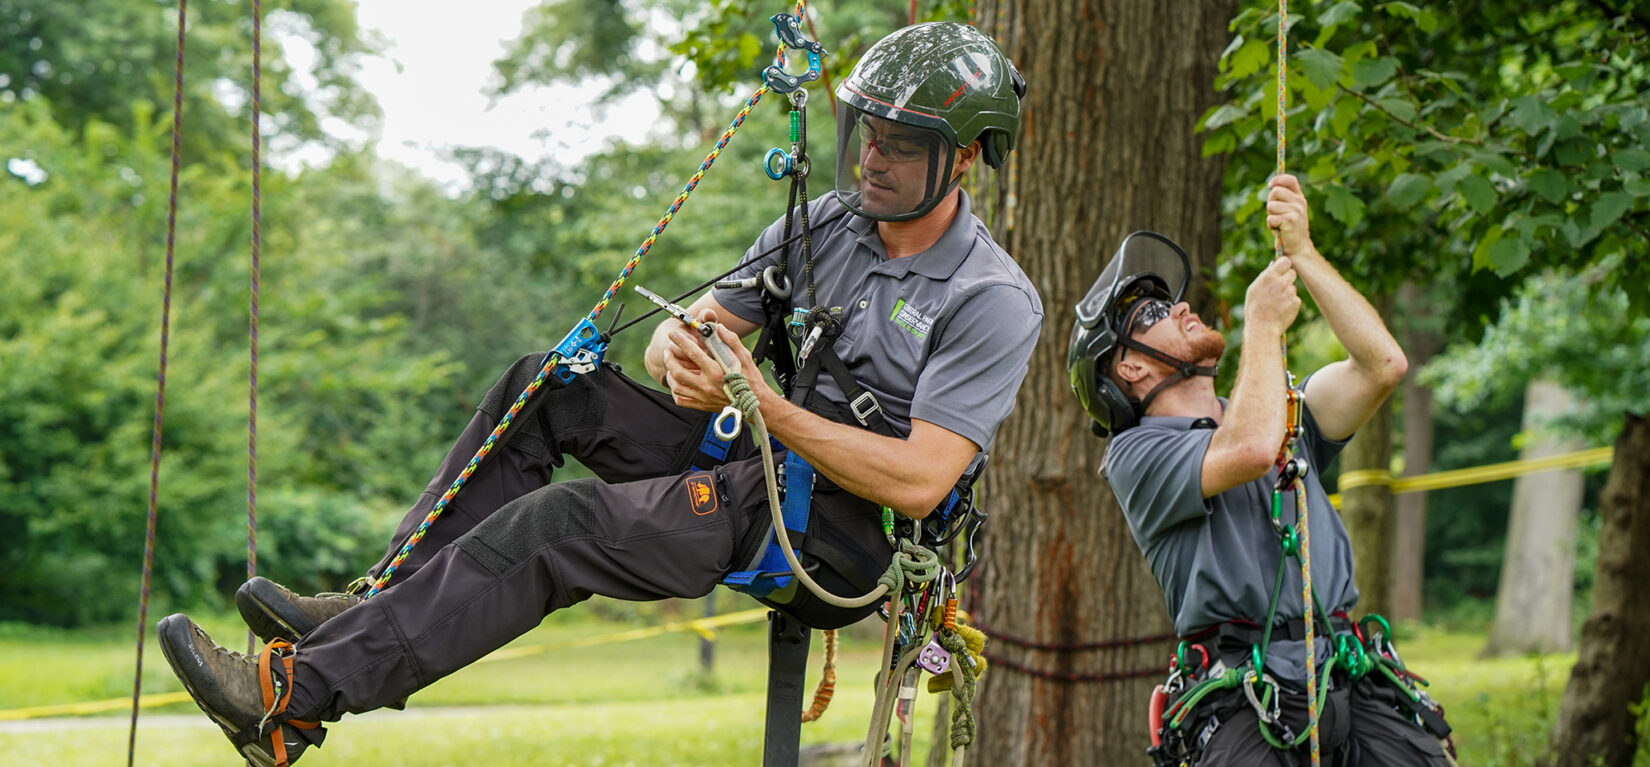 Two arborists in protective gear, suited up in climbing equipment and hoisting themselves into the air